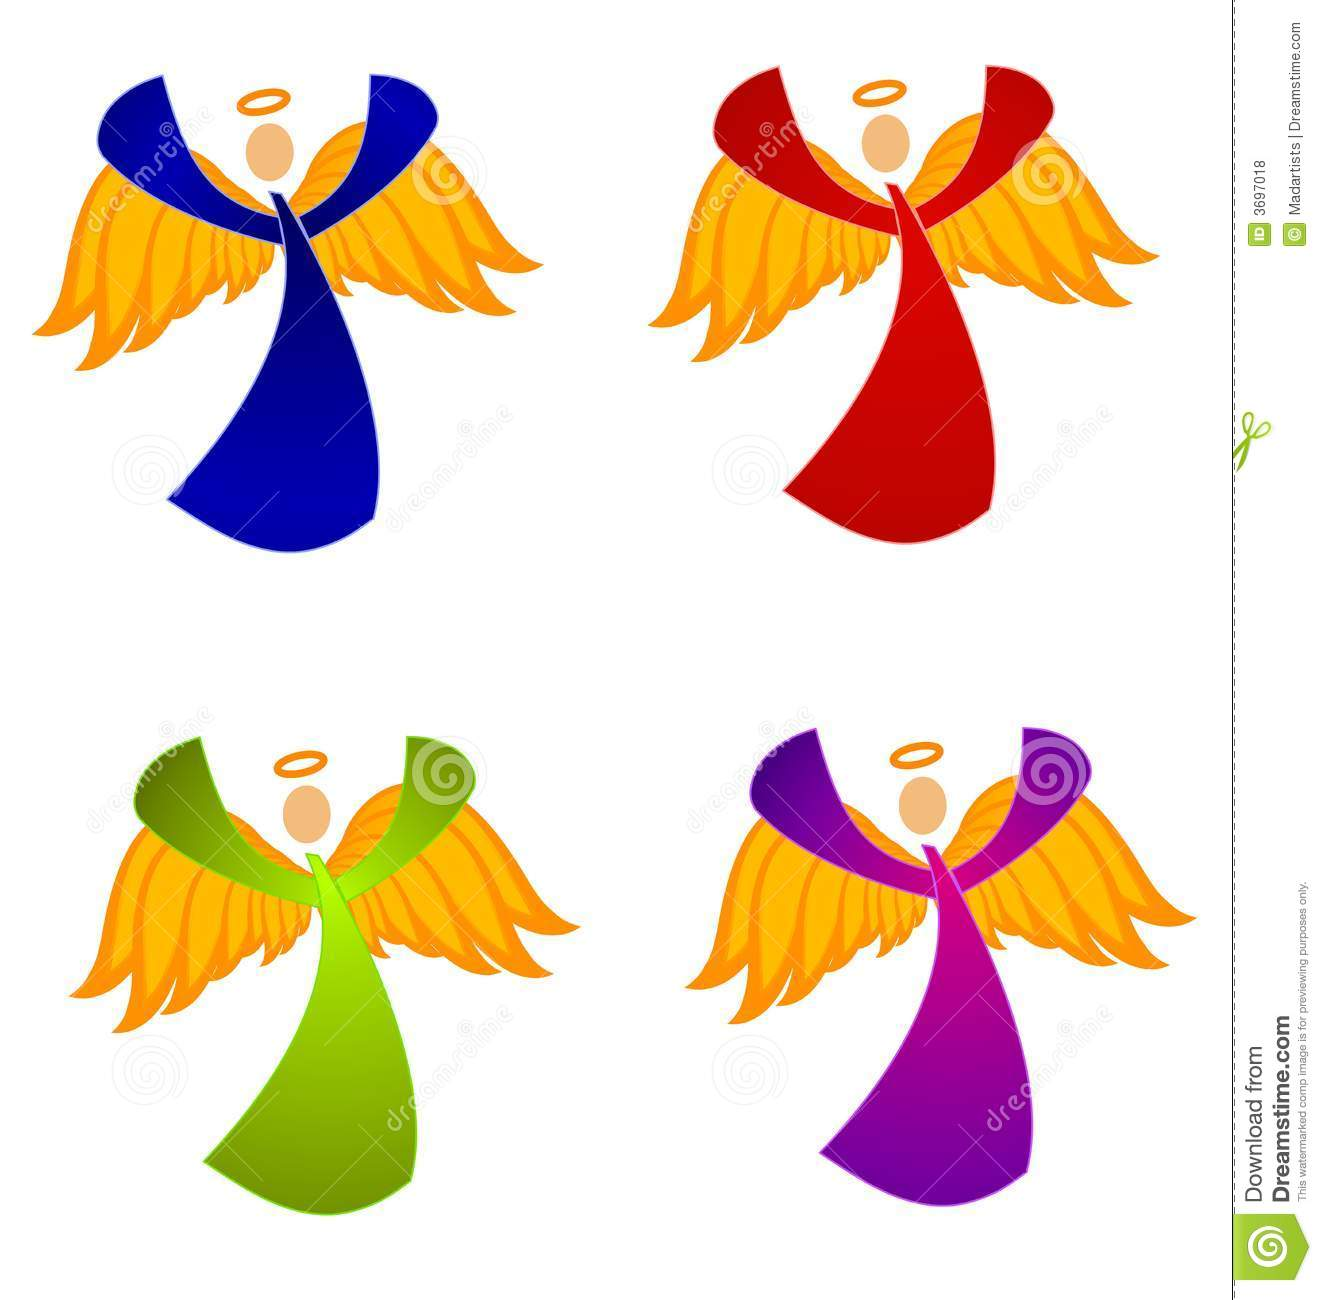 Variety Of Christmas Angels Clip Art Royalty Free Stock Photos ...